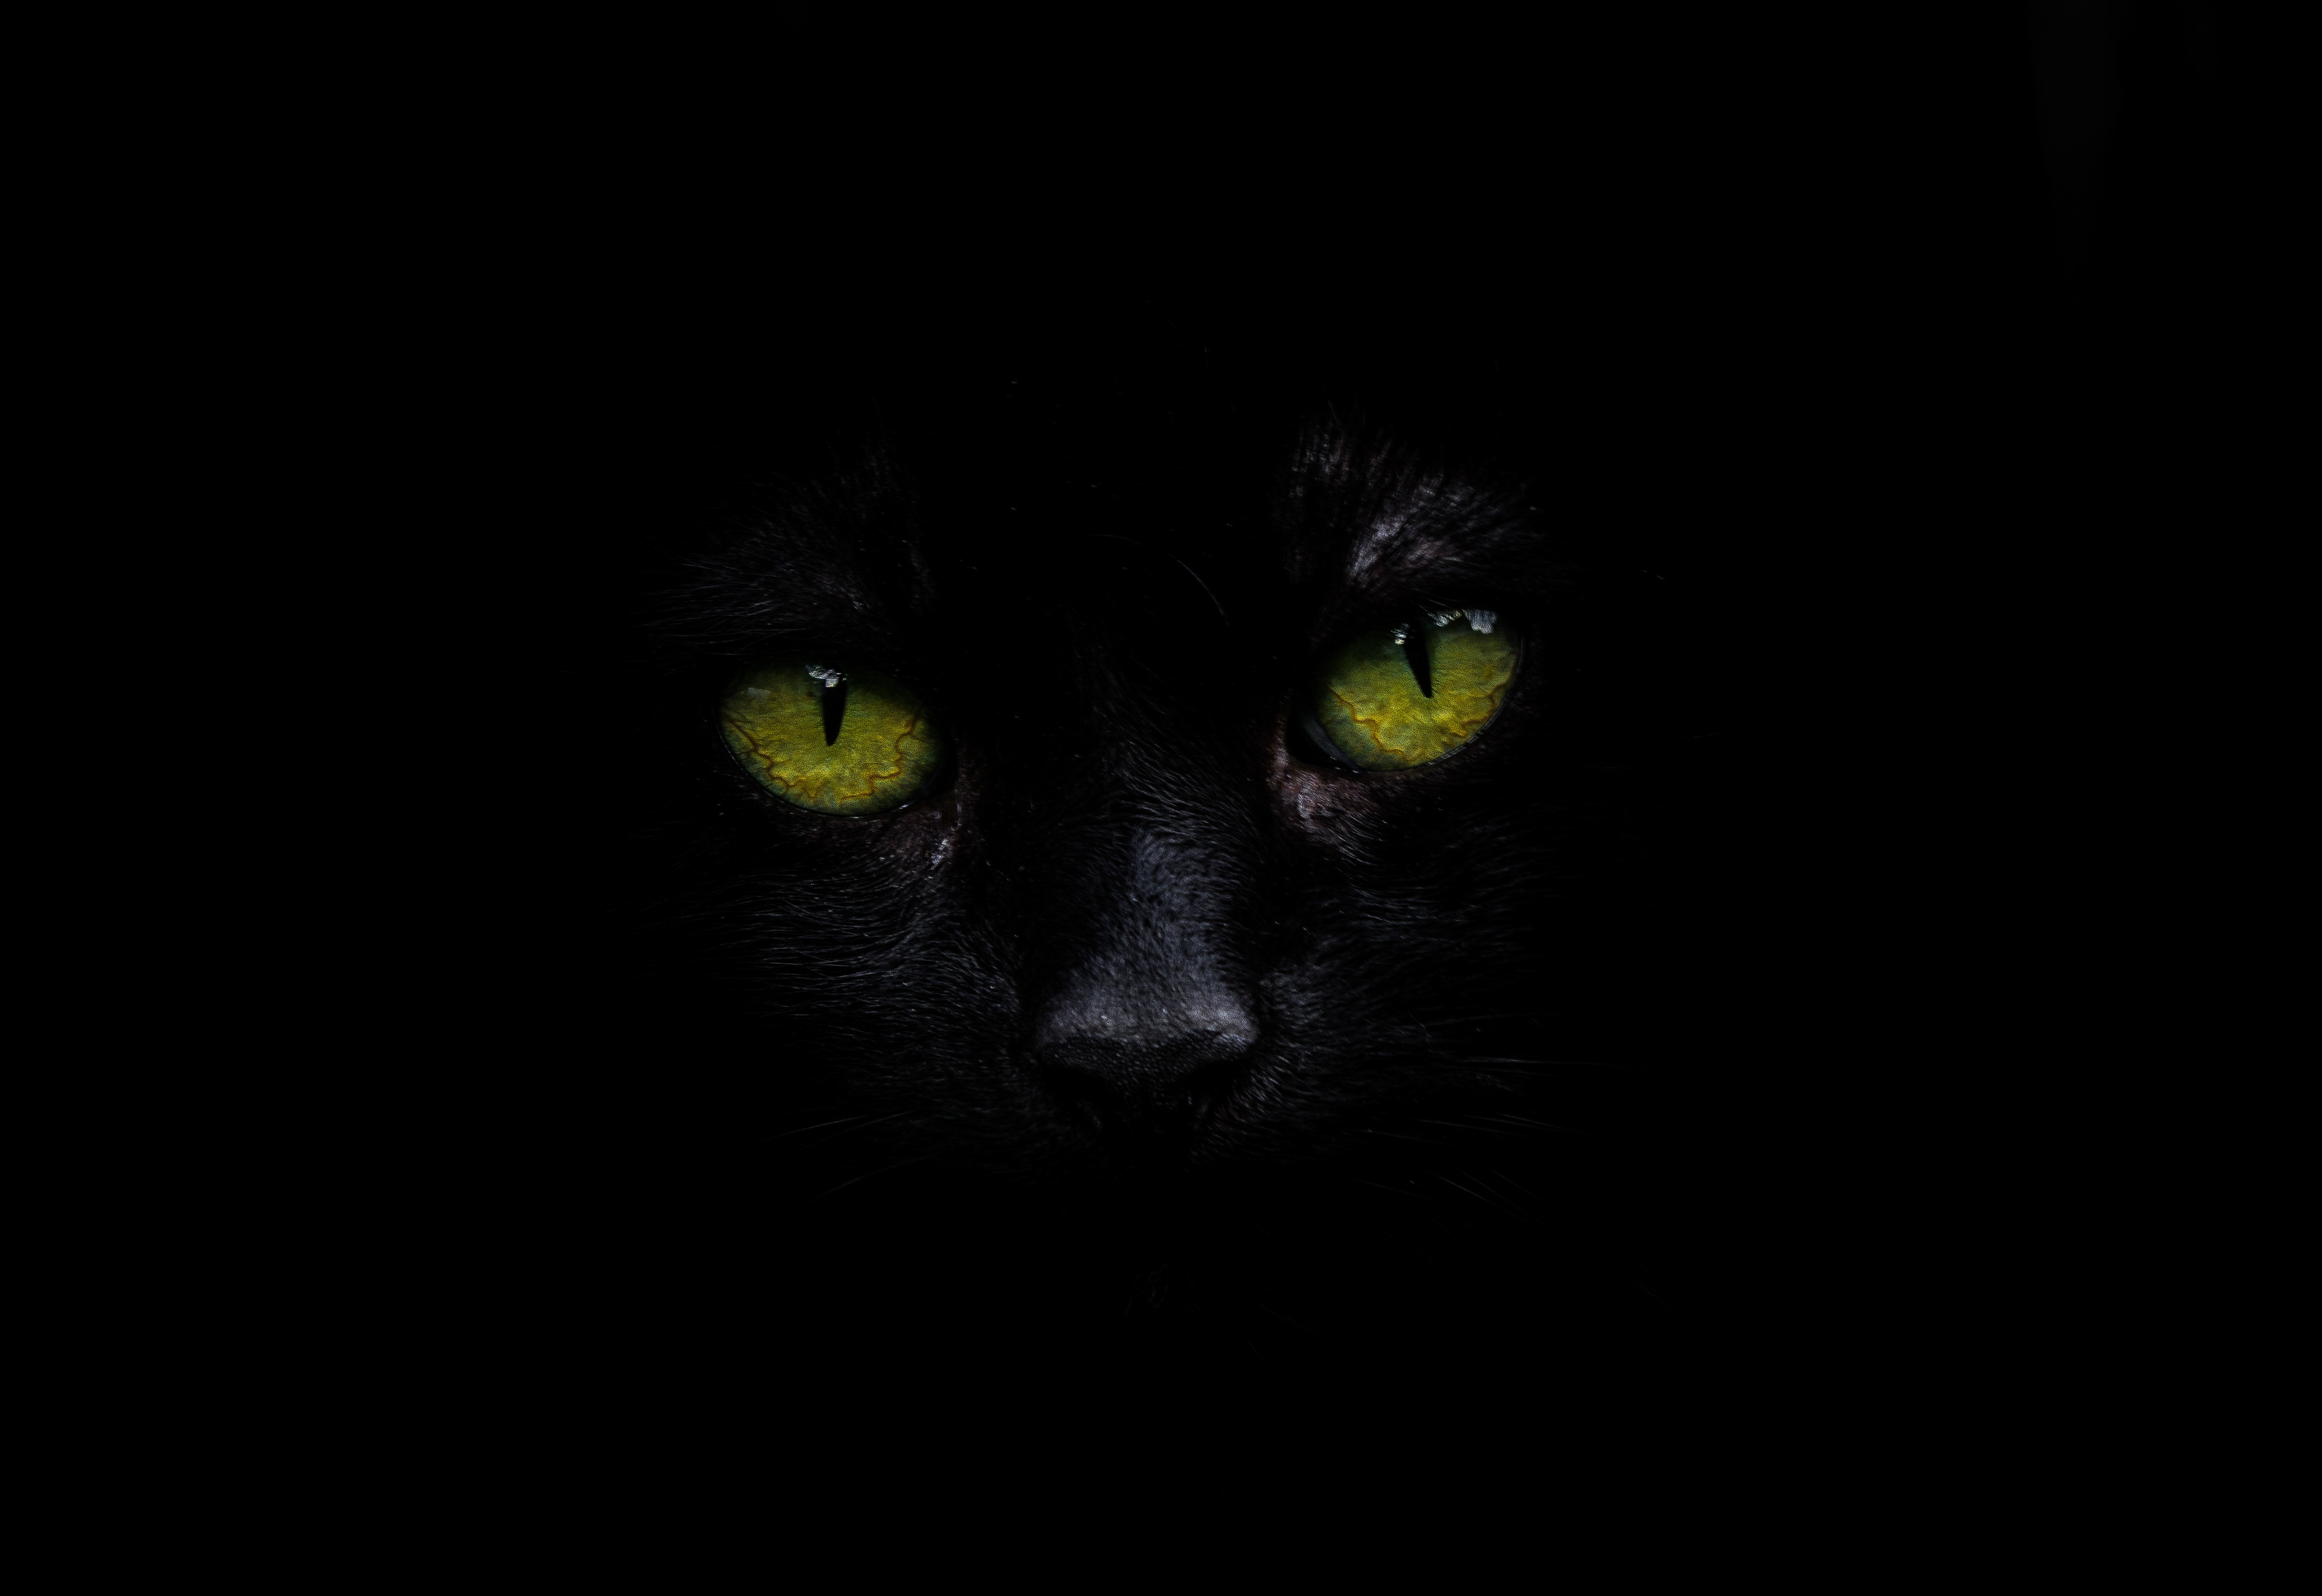 Cat Oled 5k Hd Animals 4k Wallpapers Images